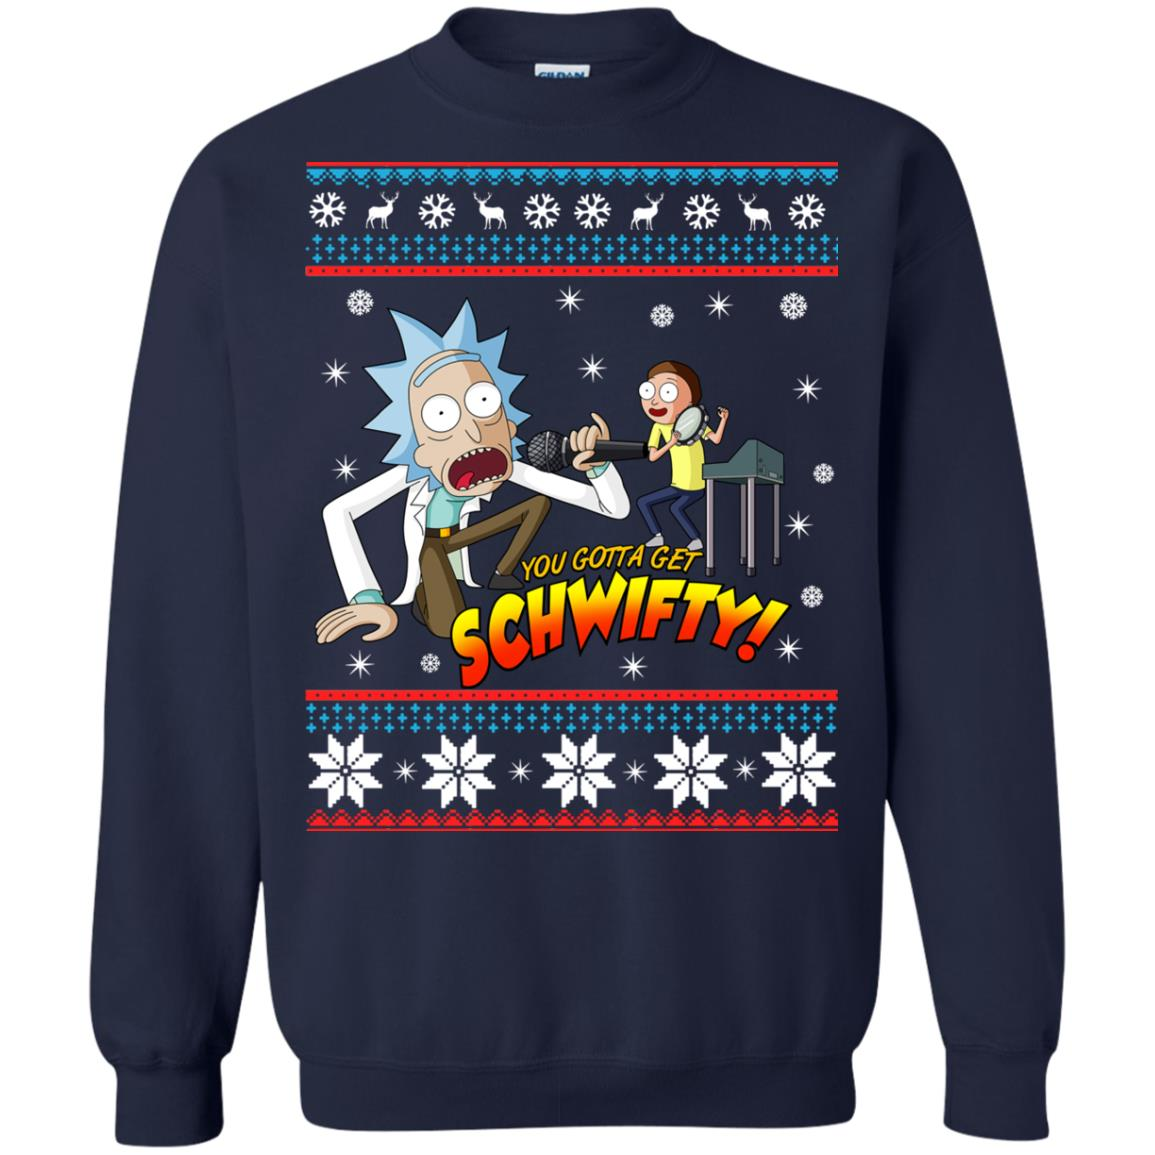 image 2416 - You gotta get Schwifty Ugly Christmas sweater, hoodie